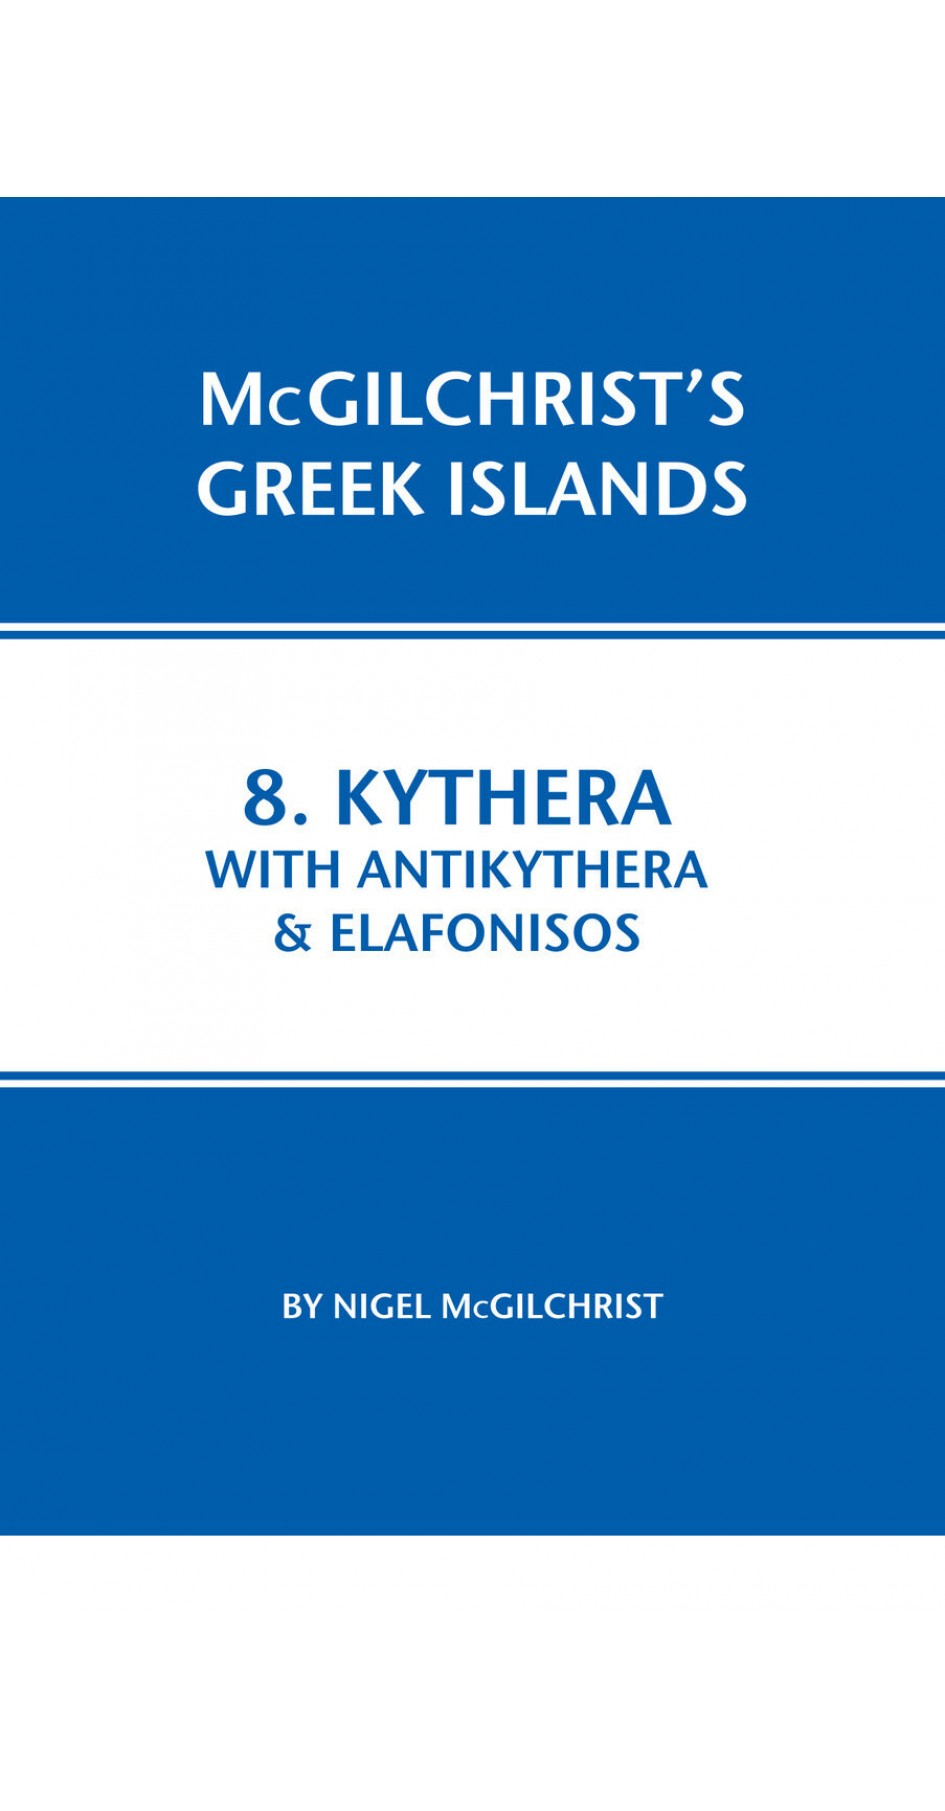 08. Kythera with Antikythera & Elafonisos - McGilchrist's Greek Islands